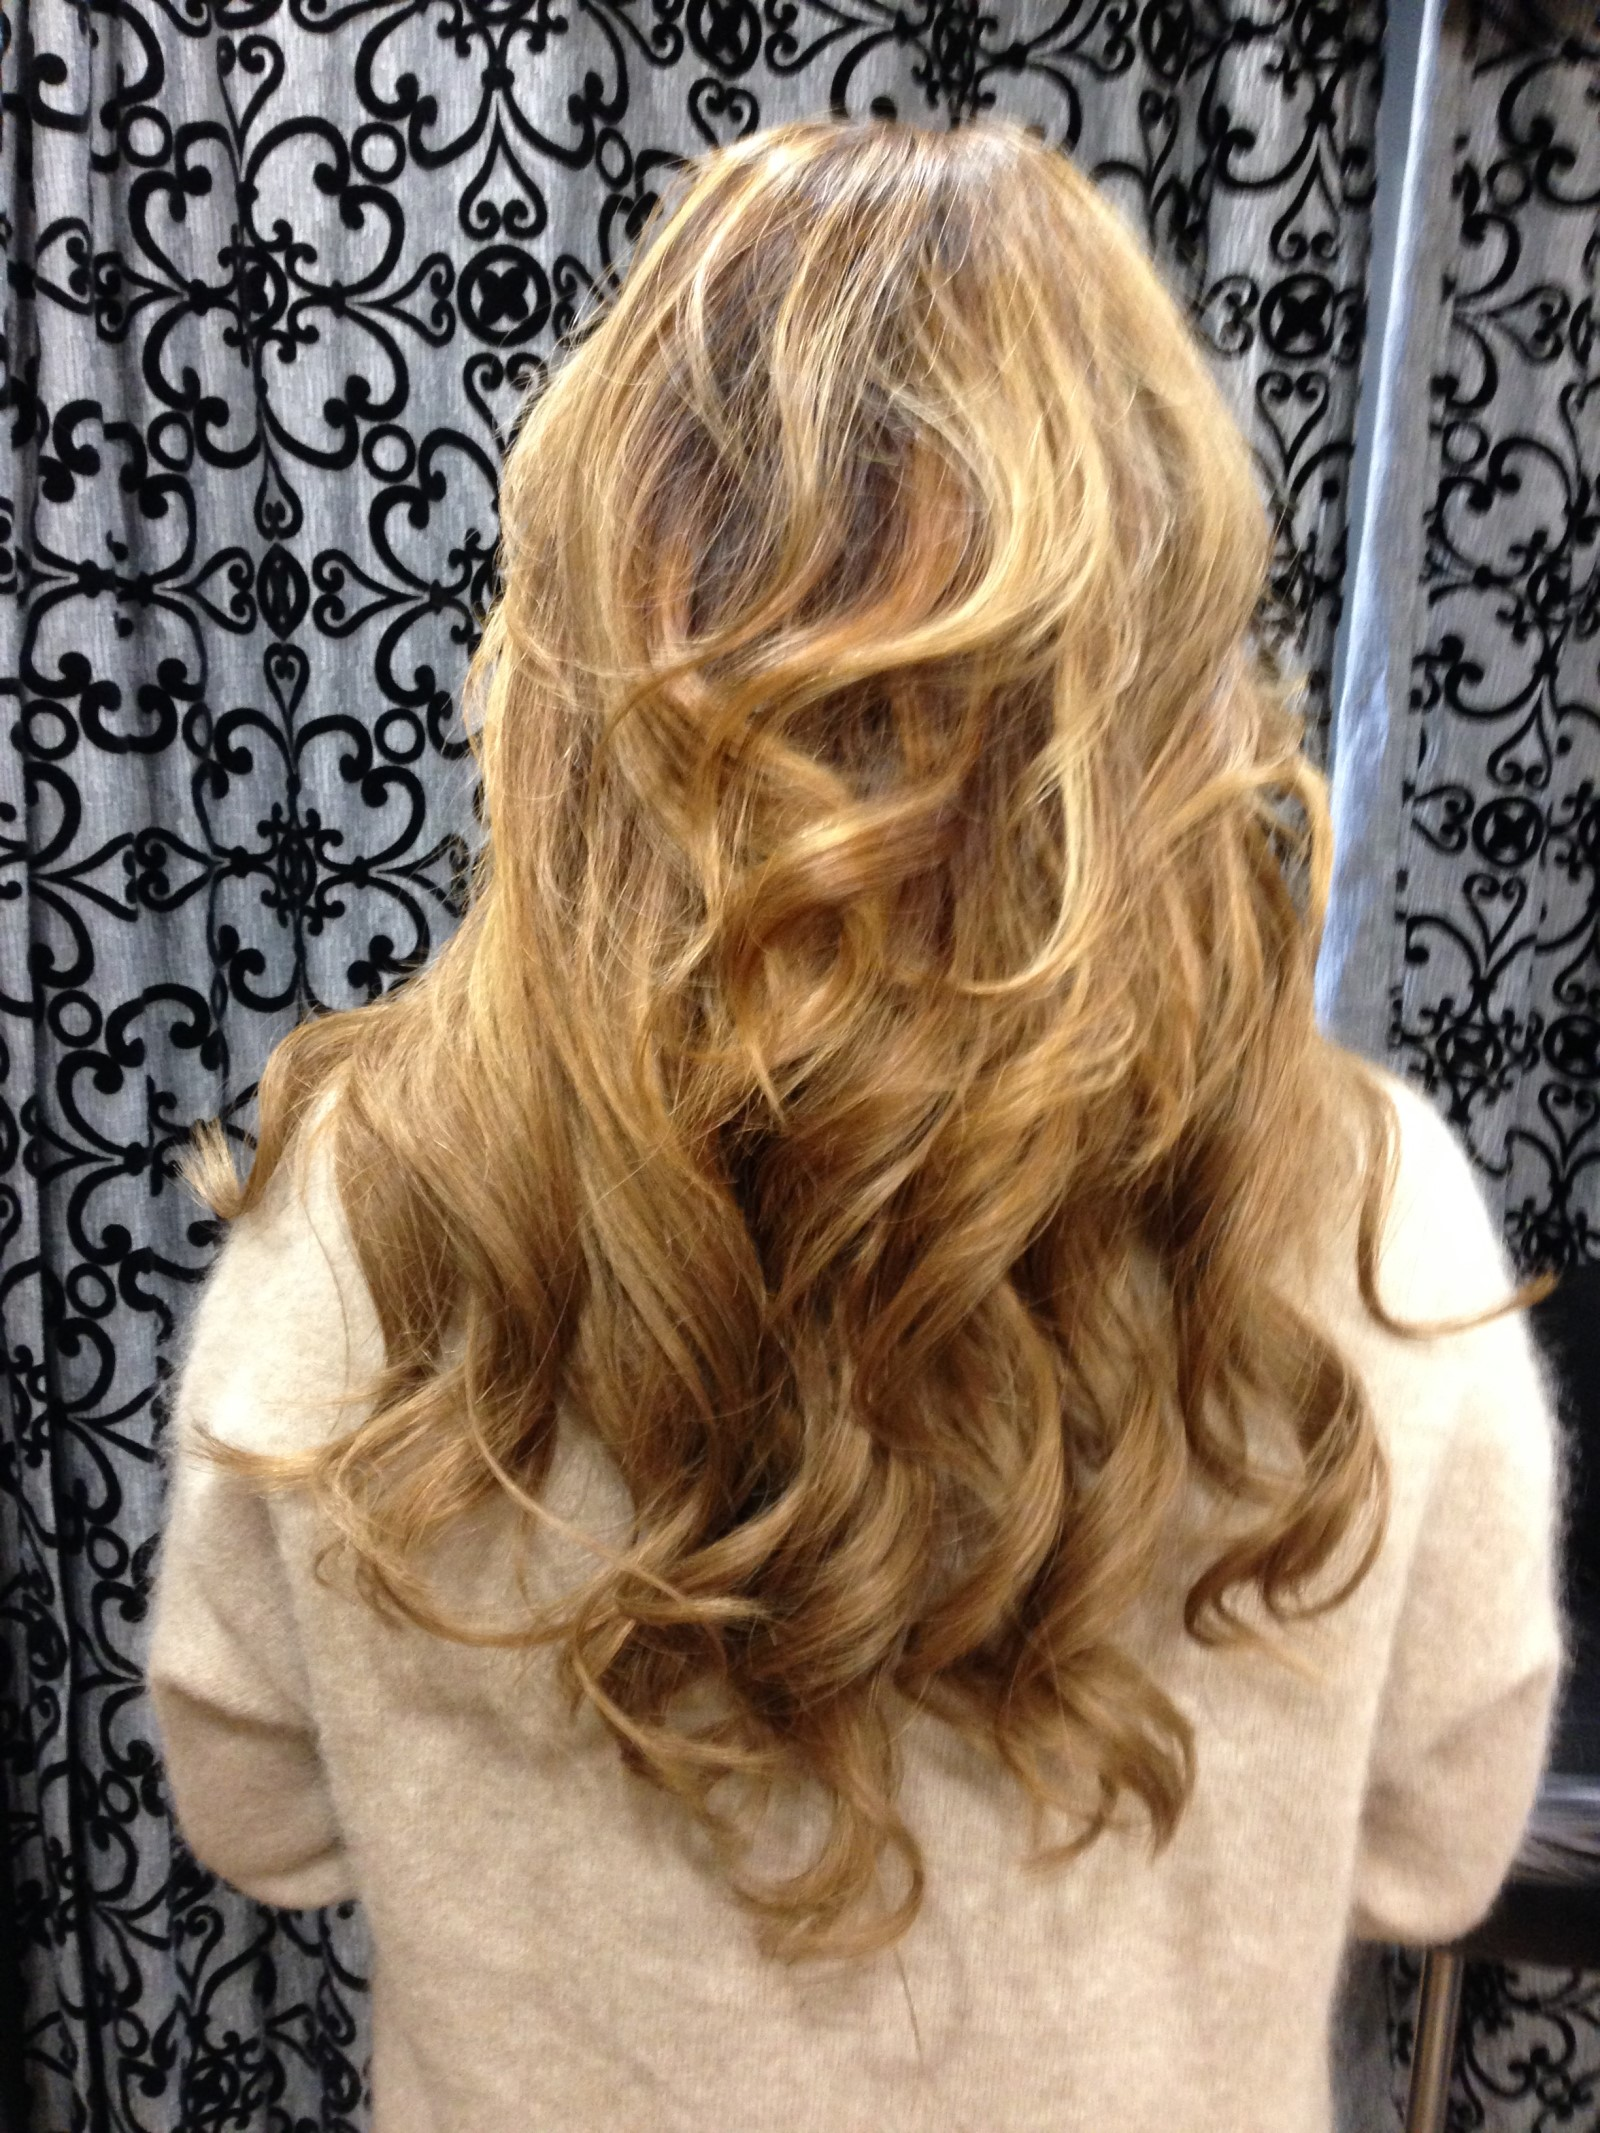 Shannon Elaine Hair Extension Specialist Accredited With